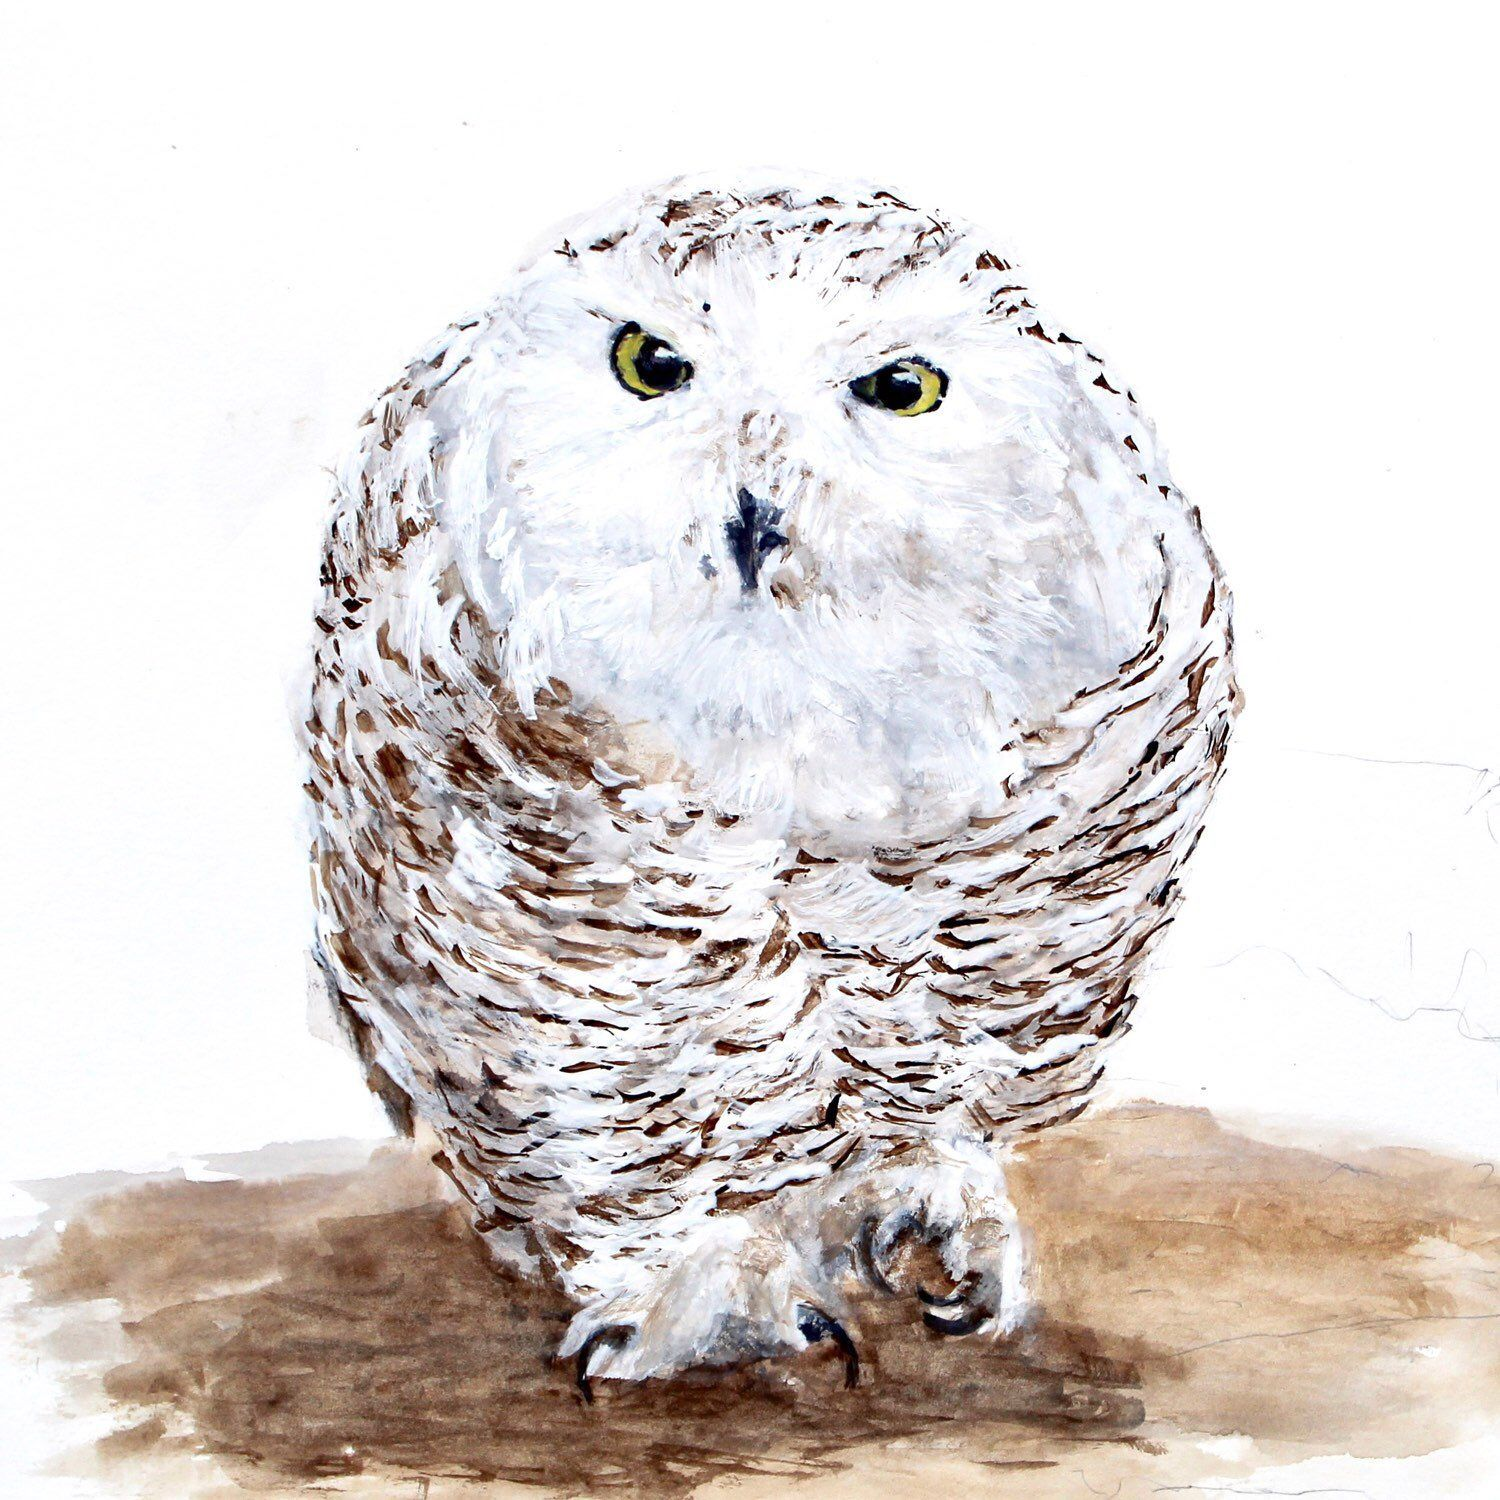 Archival Giclee Fine Art Print of Snowy Owl created from